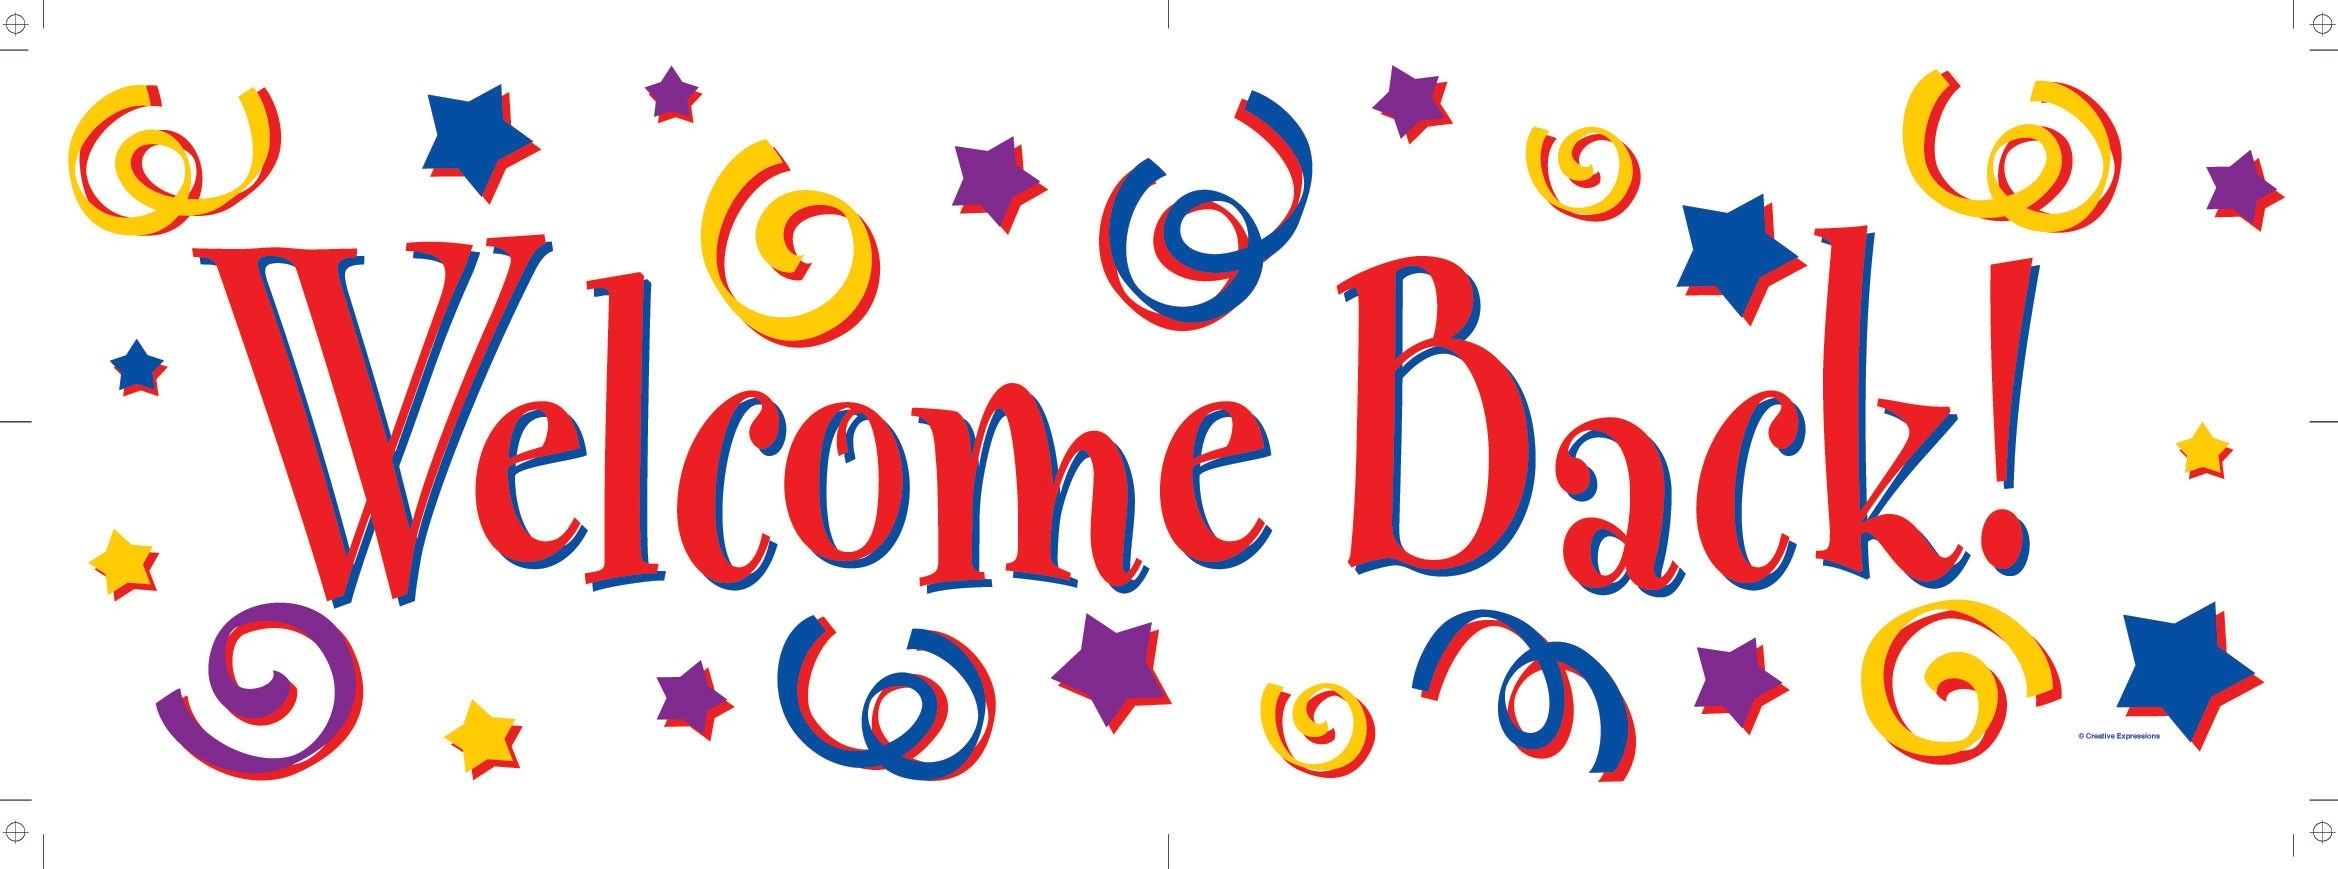 Free Animated Welcome Back To School Clipart.